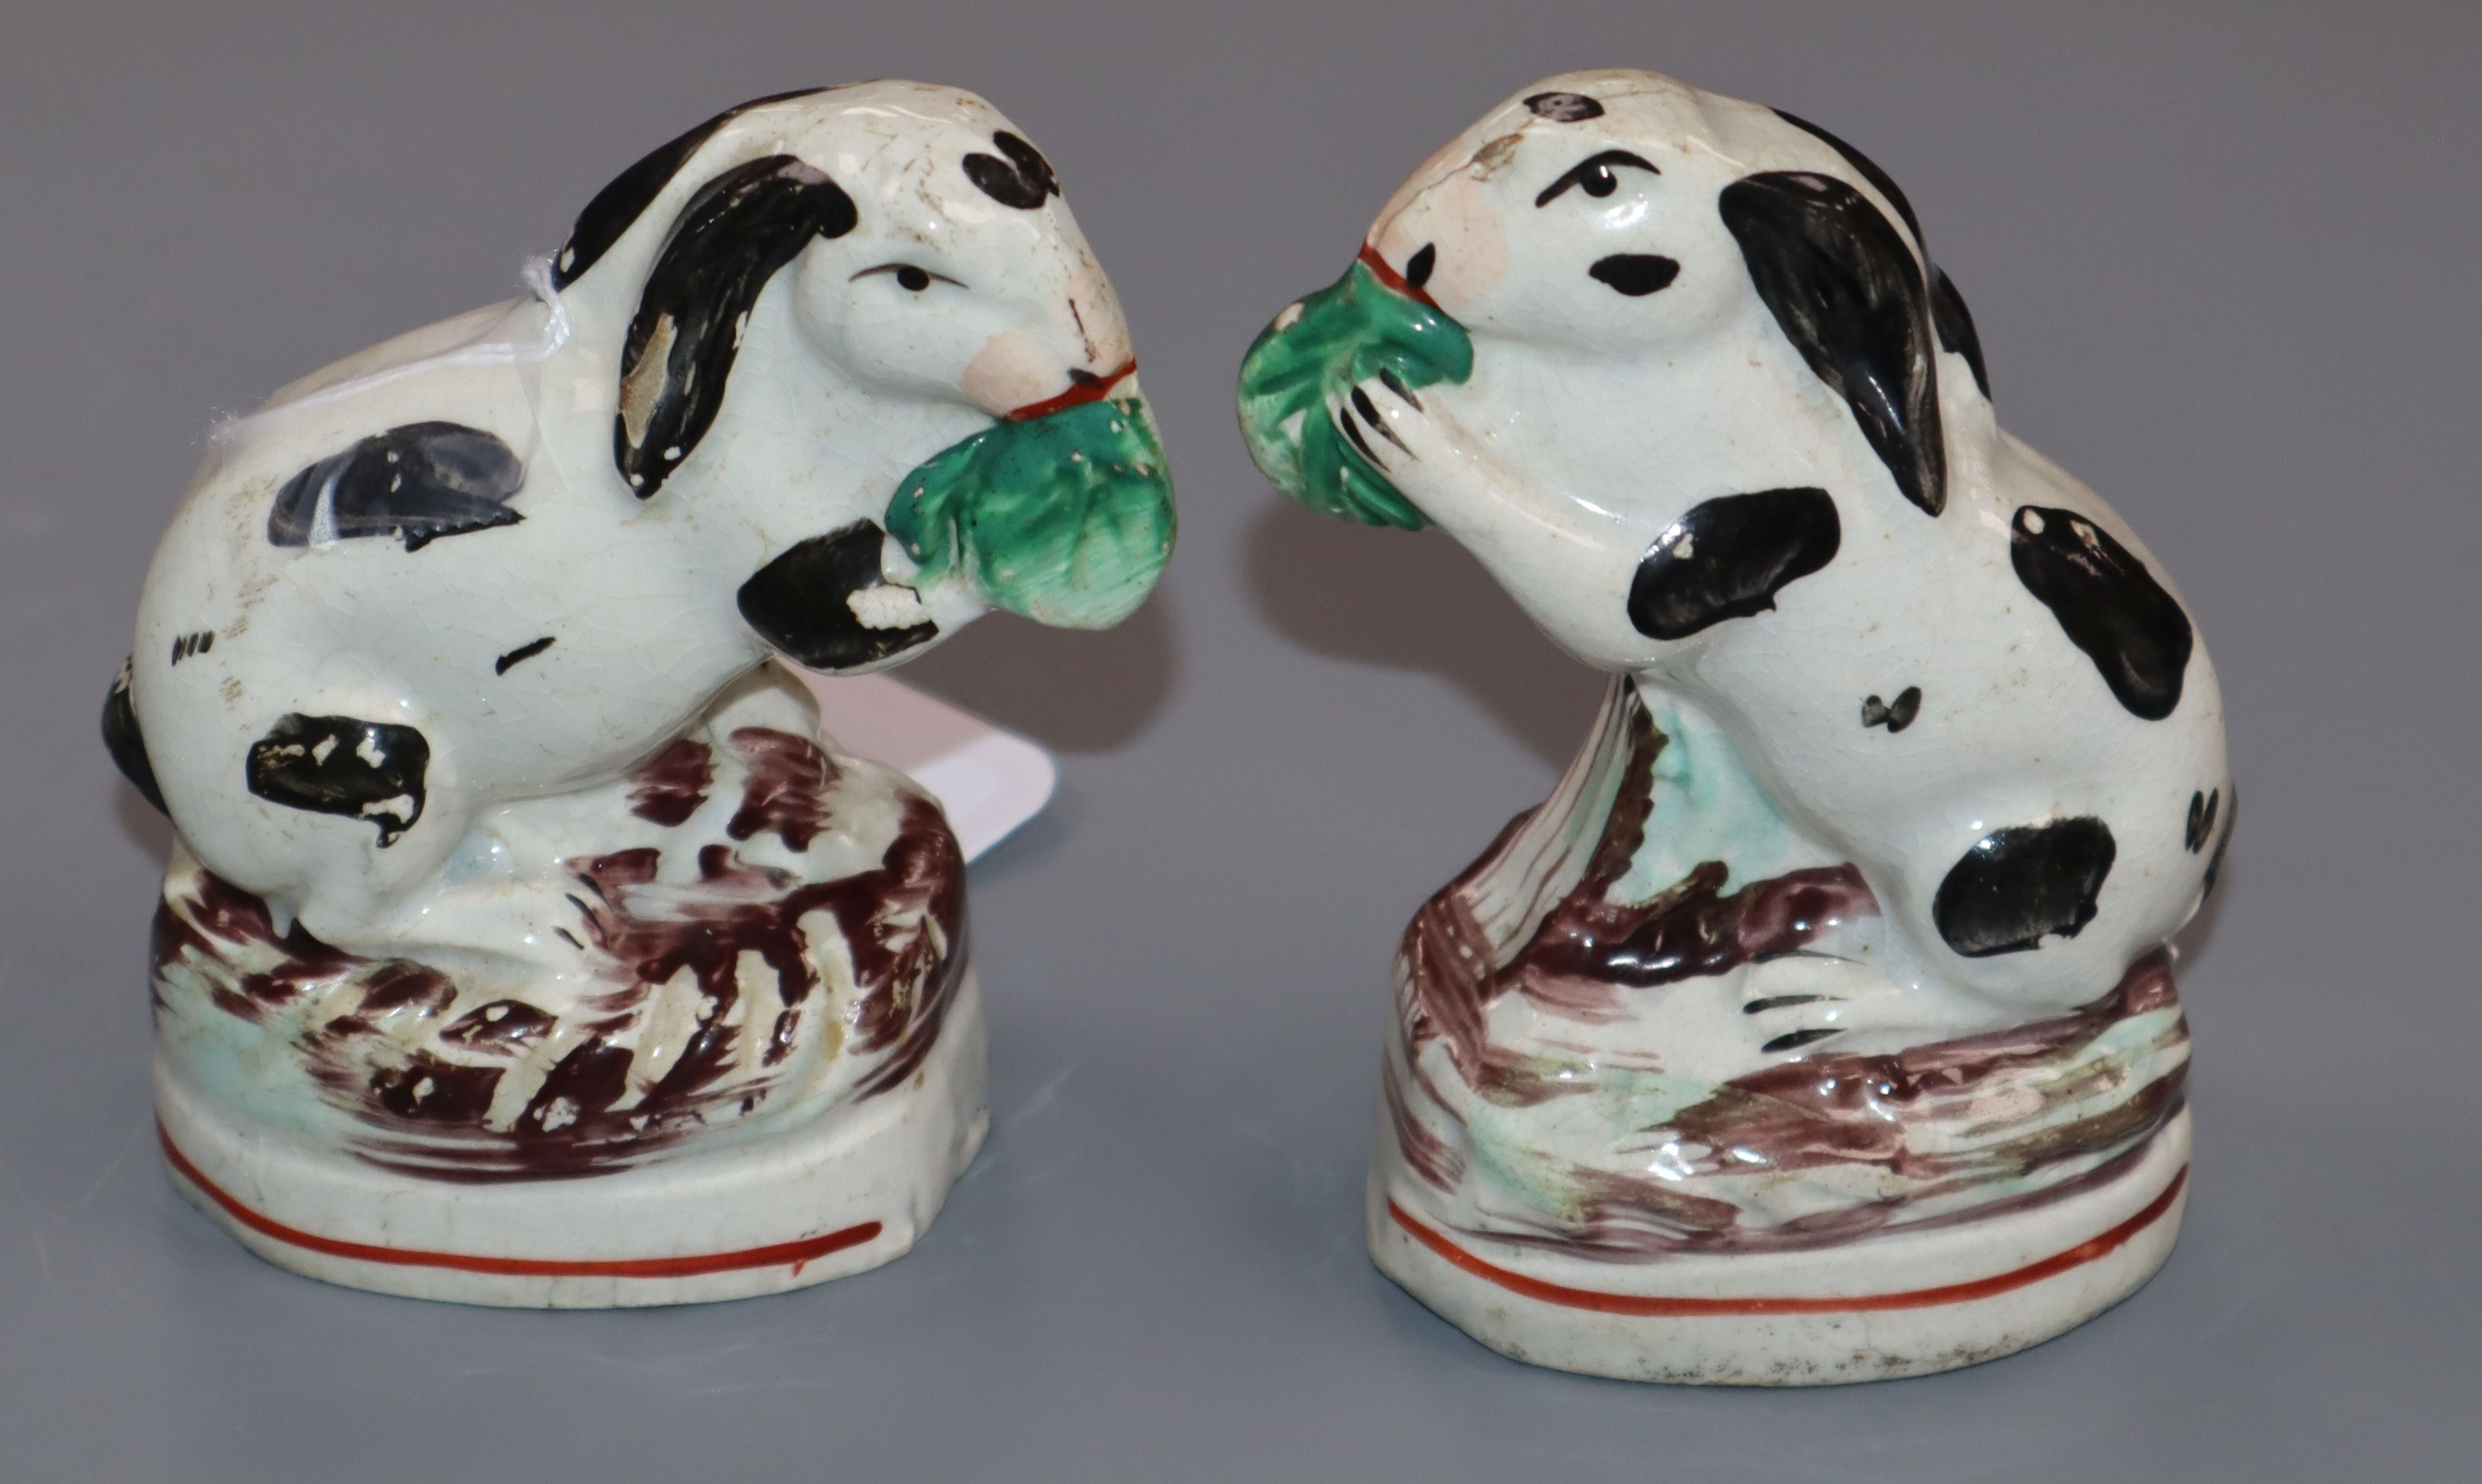 Lot 279 - A pair of Staffordshire black and white pottery rabbits, seated on their haunches and nibbling